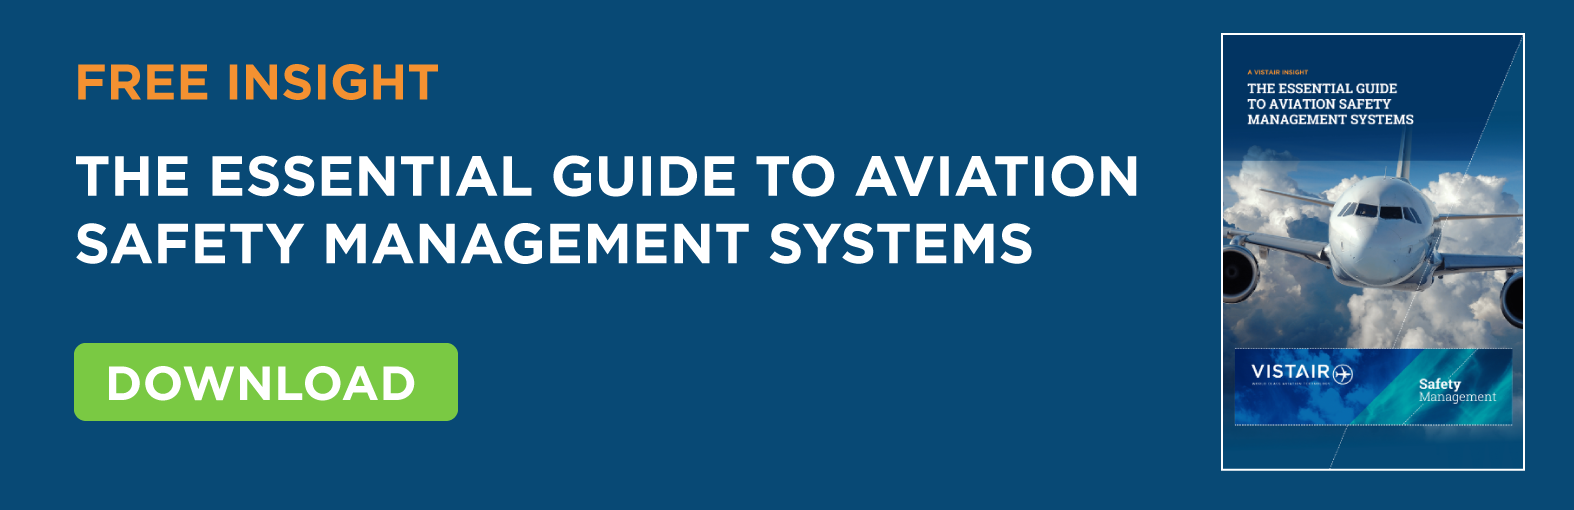 The essential guide to aviation safety management systems